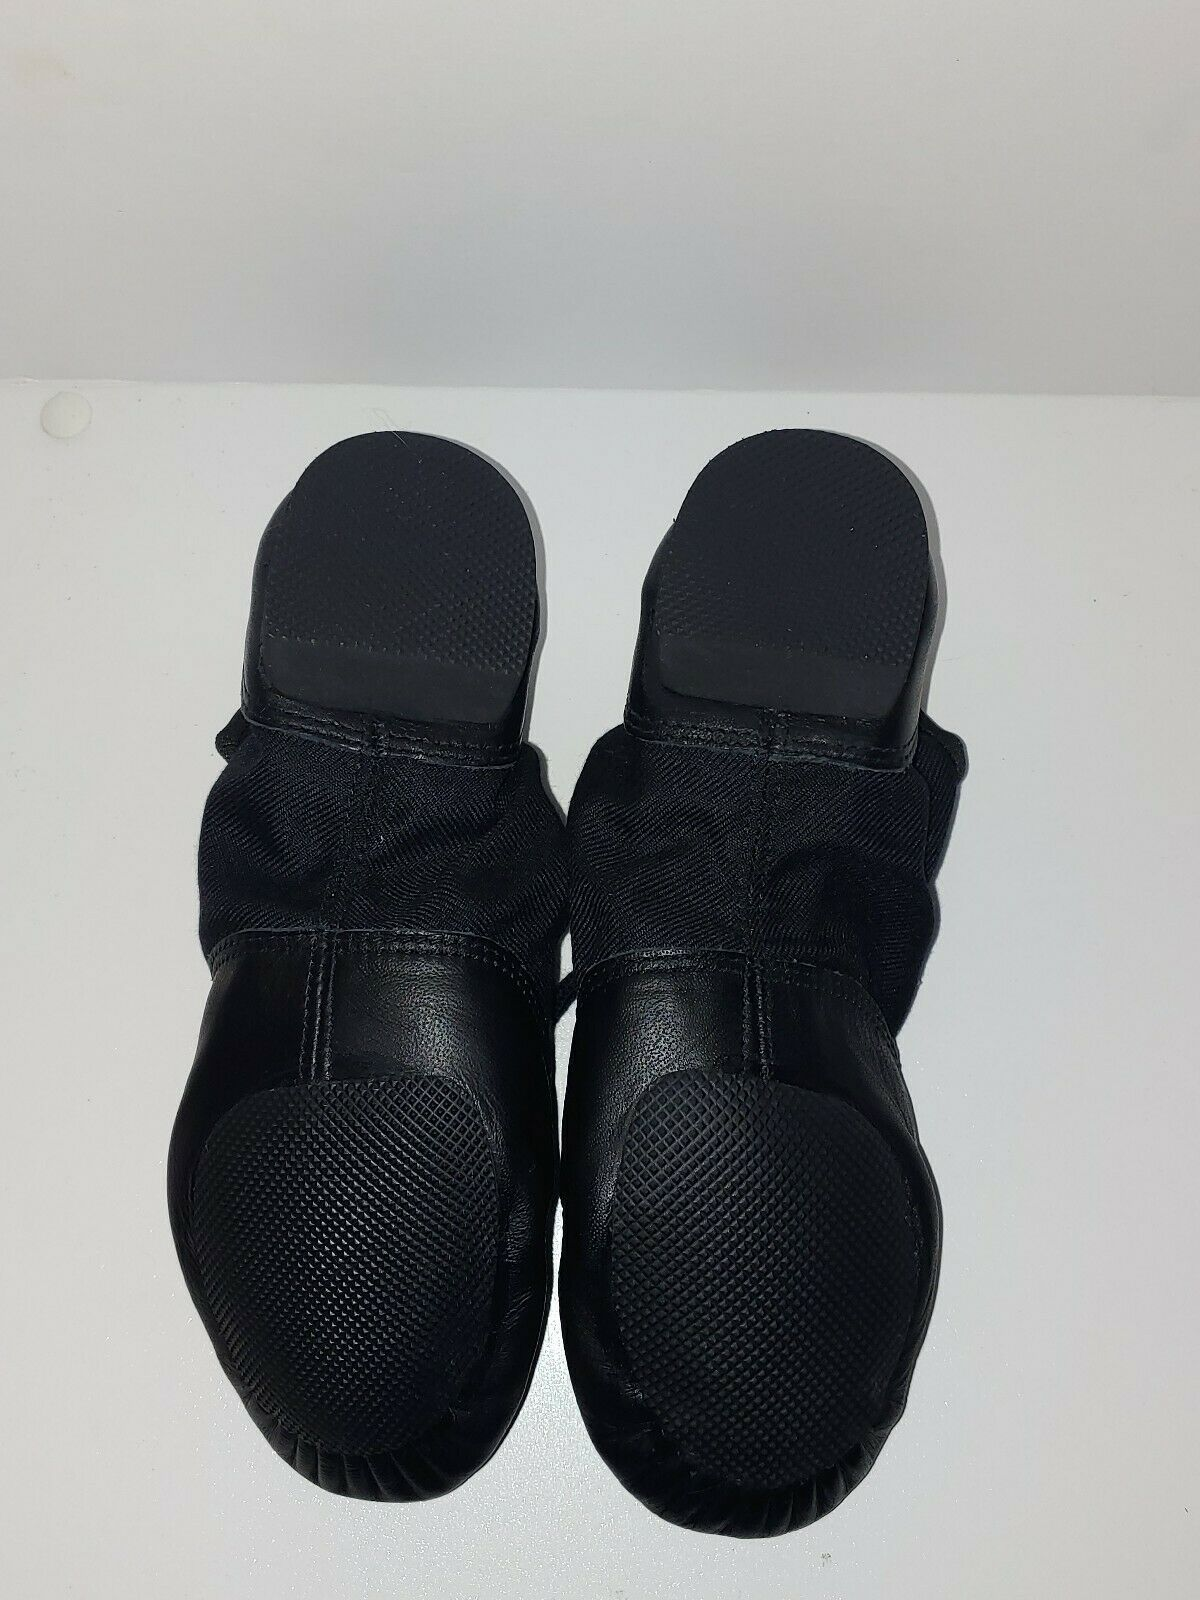 Capezio 358C Black Lace Split-Sole Jazz Shoe Child Size 1M 1 M  image 4